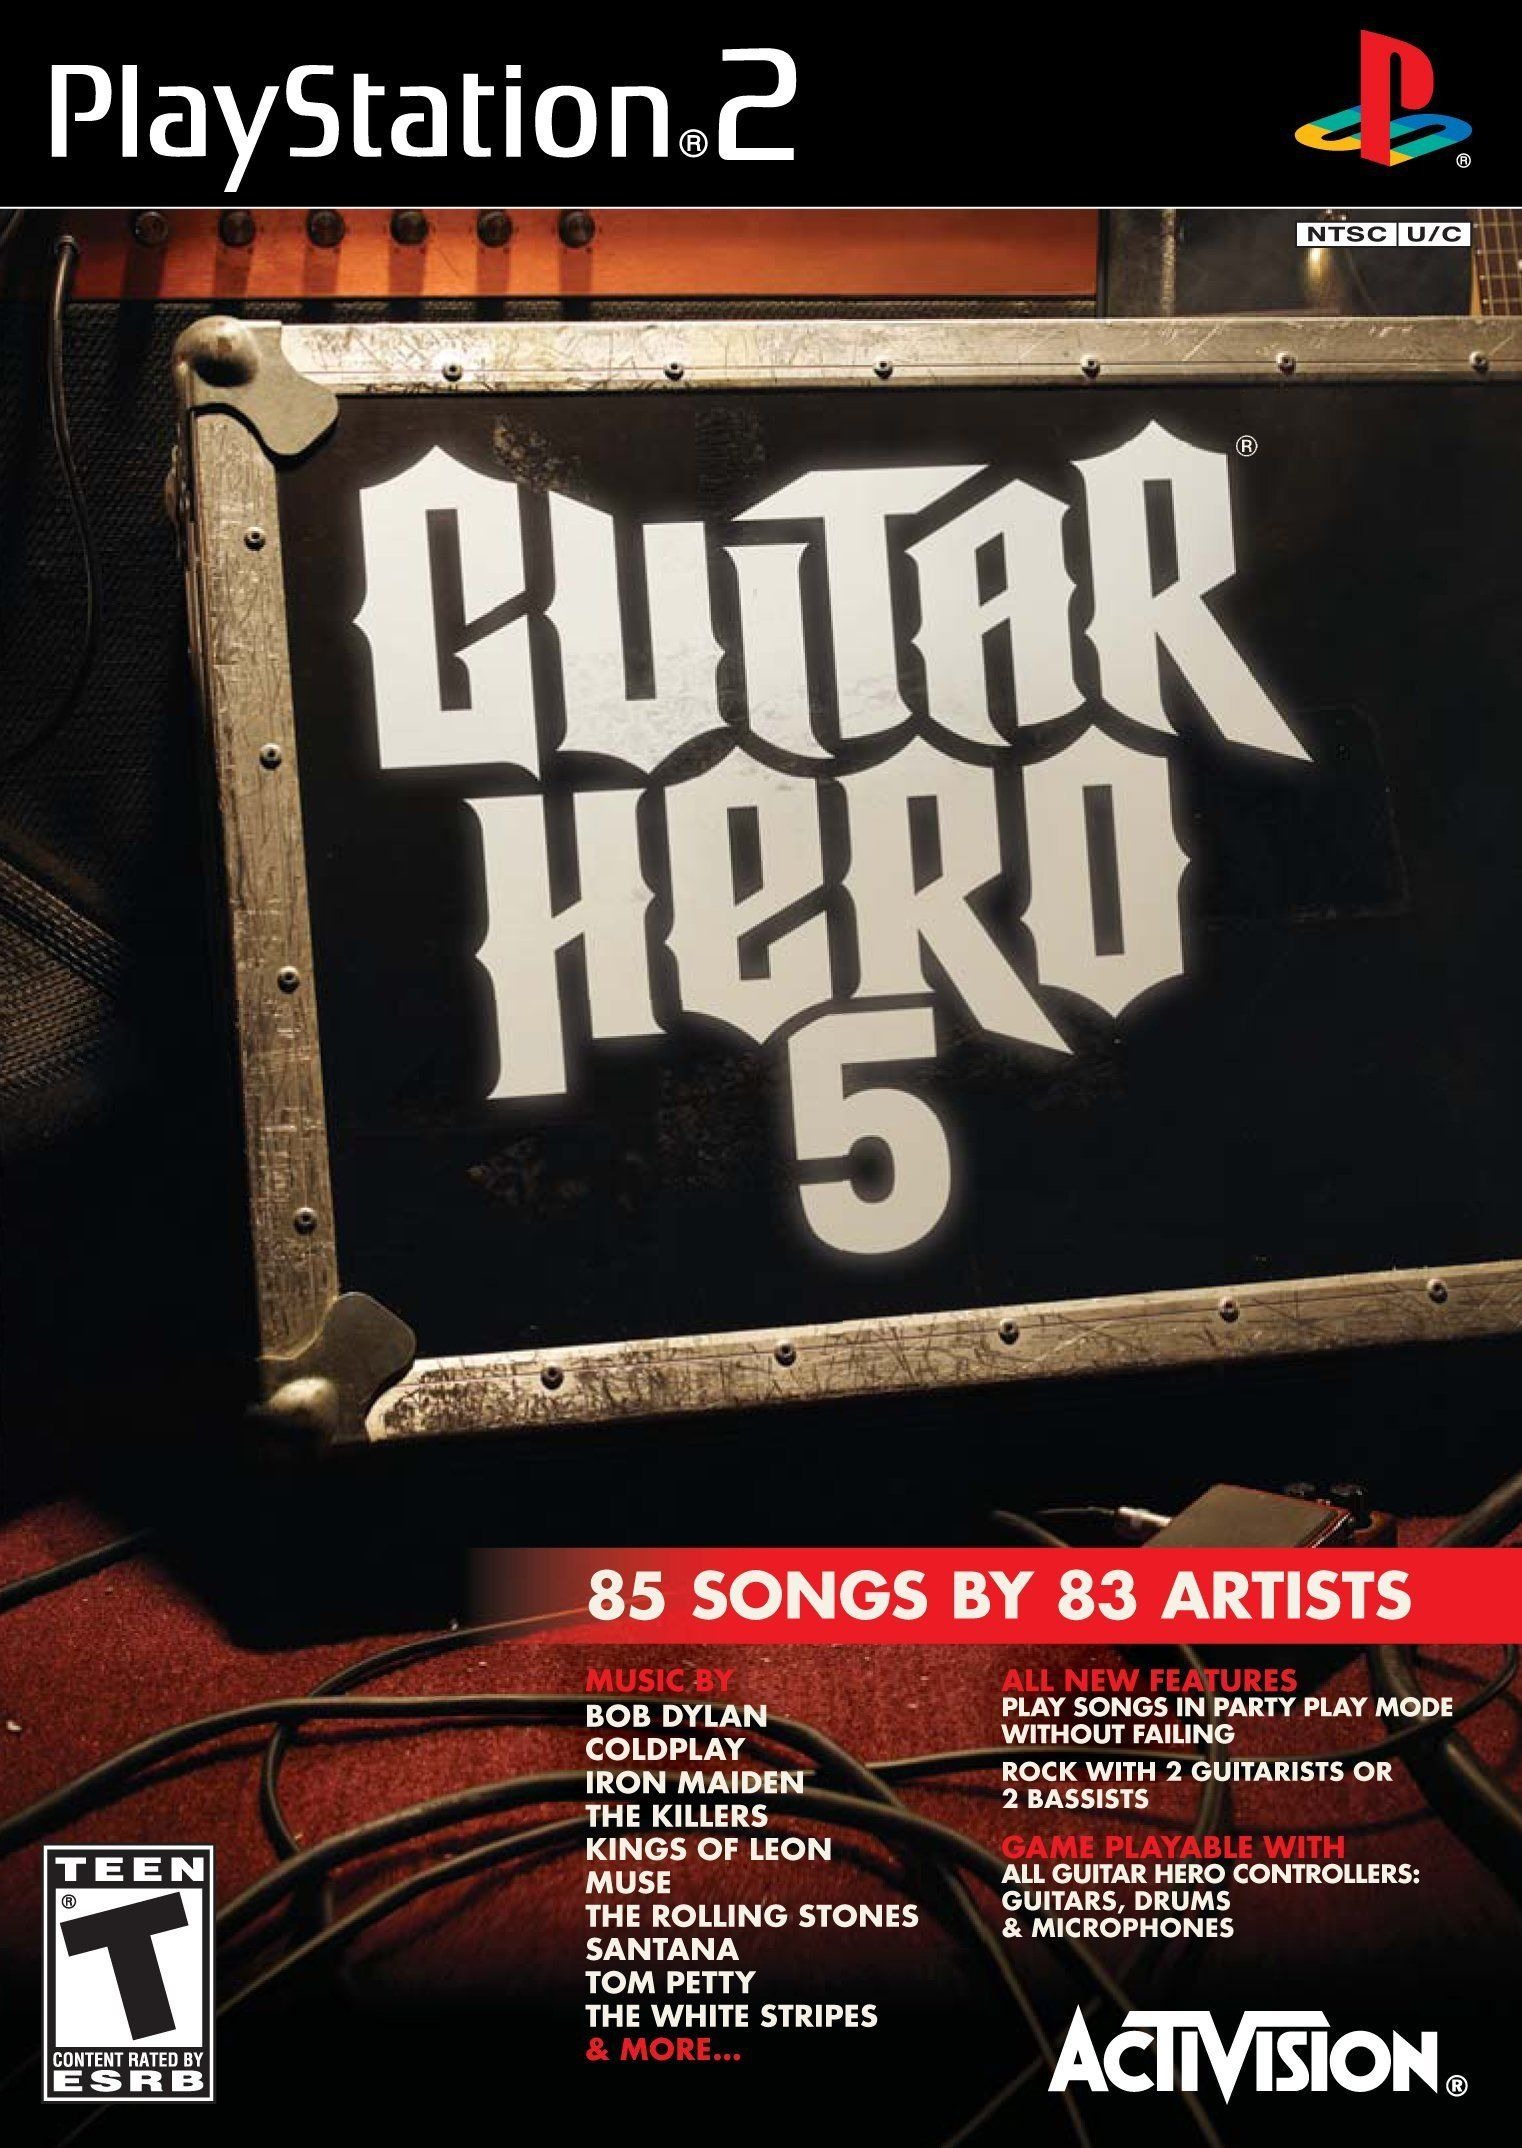 Guitar Hero 5 Stand Alone Software Playstation 2 Game Only Stand Hero Guitar Game Guitar Hero Wii Games Xbox 360